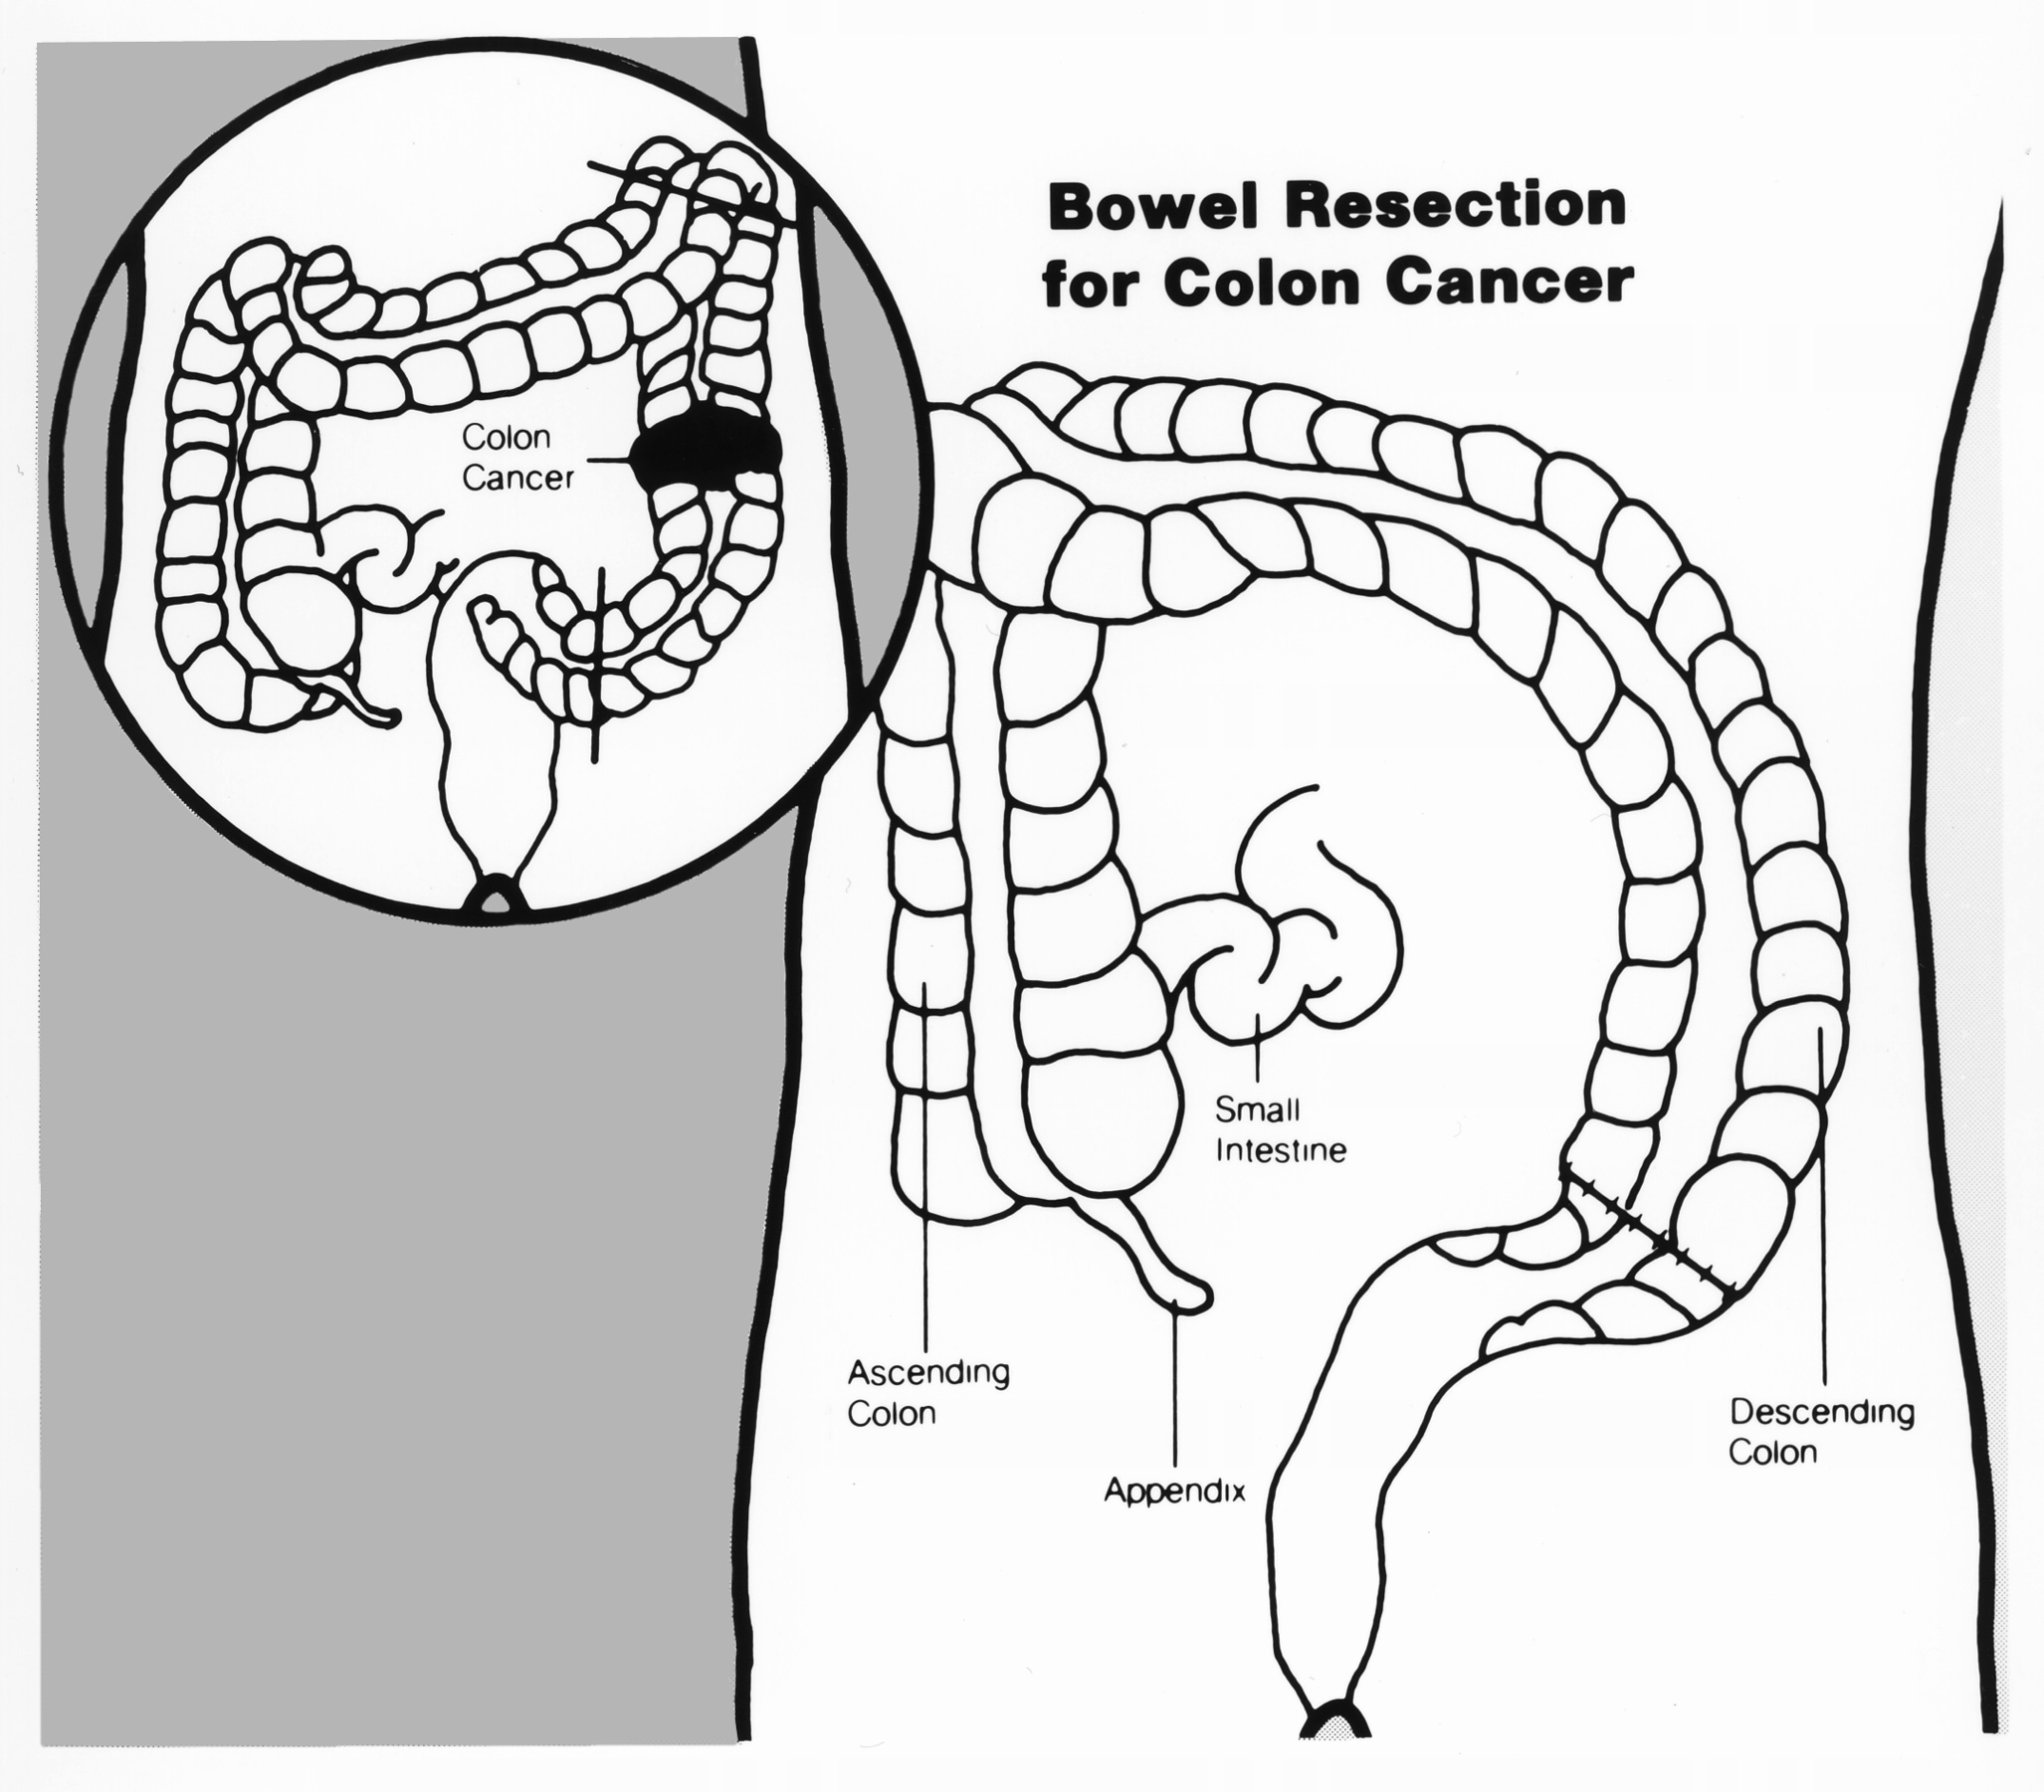 Bowel Resection Wikipedia